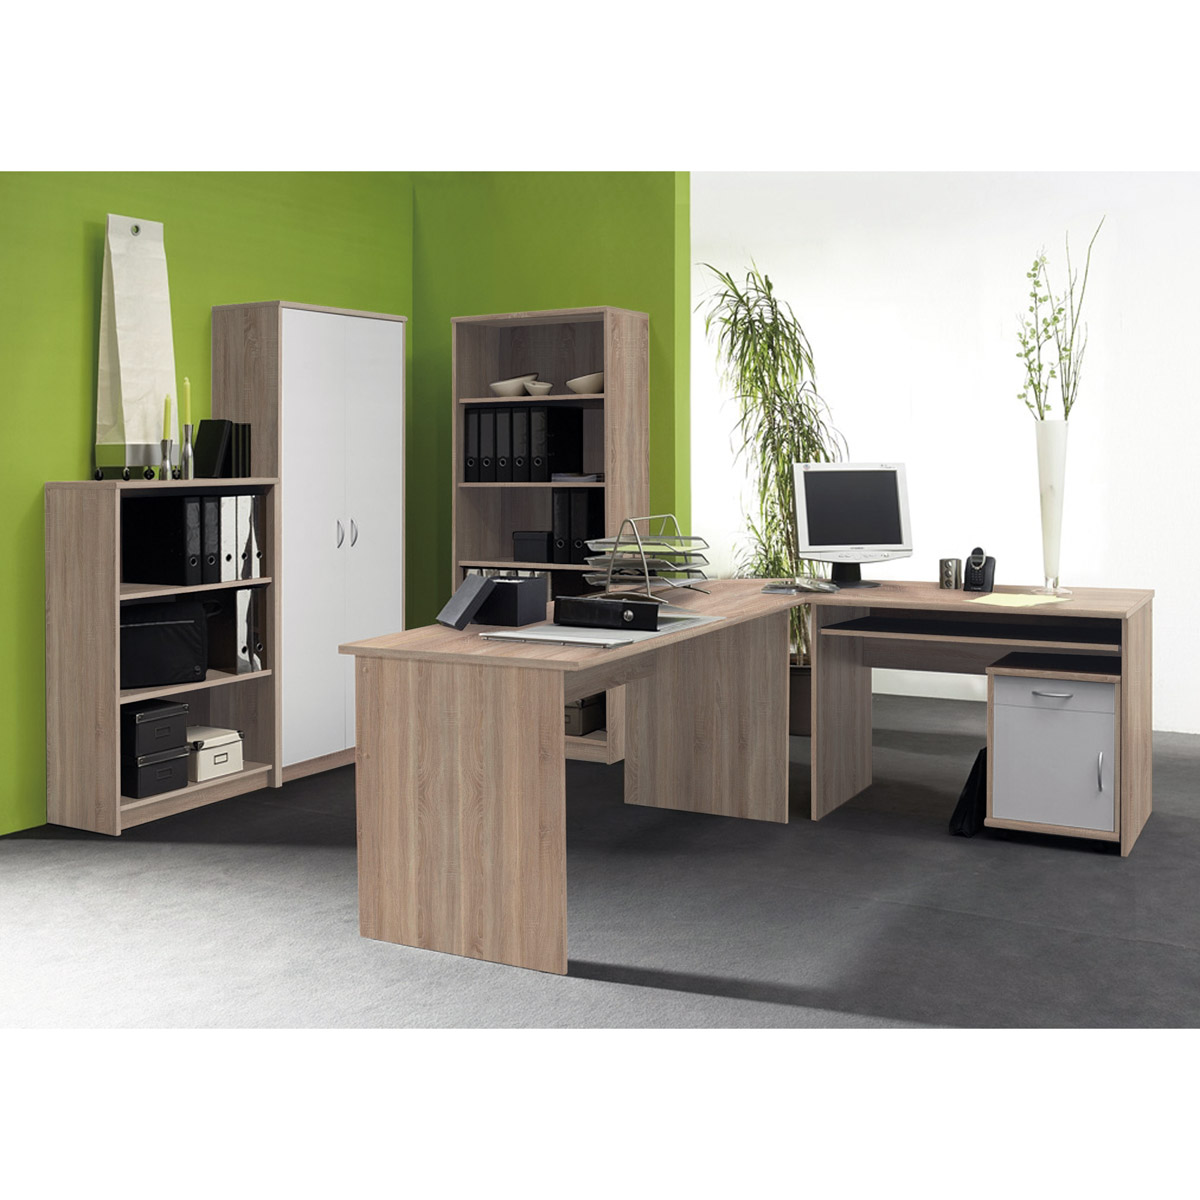 b ro office compact komplettset in walnuss sonoma eiche betonoptik wei 5 teilig ebay. Black Bedroom Furniture Sets. Home Design Ideas